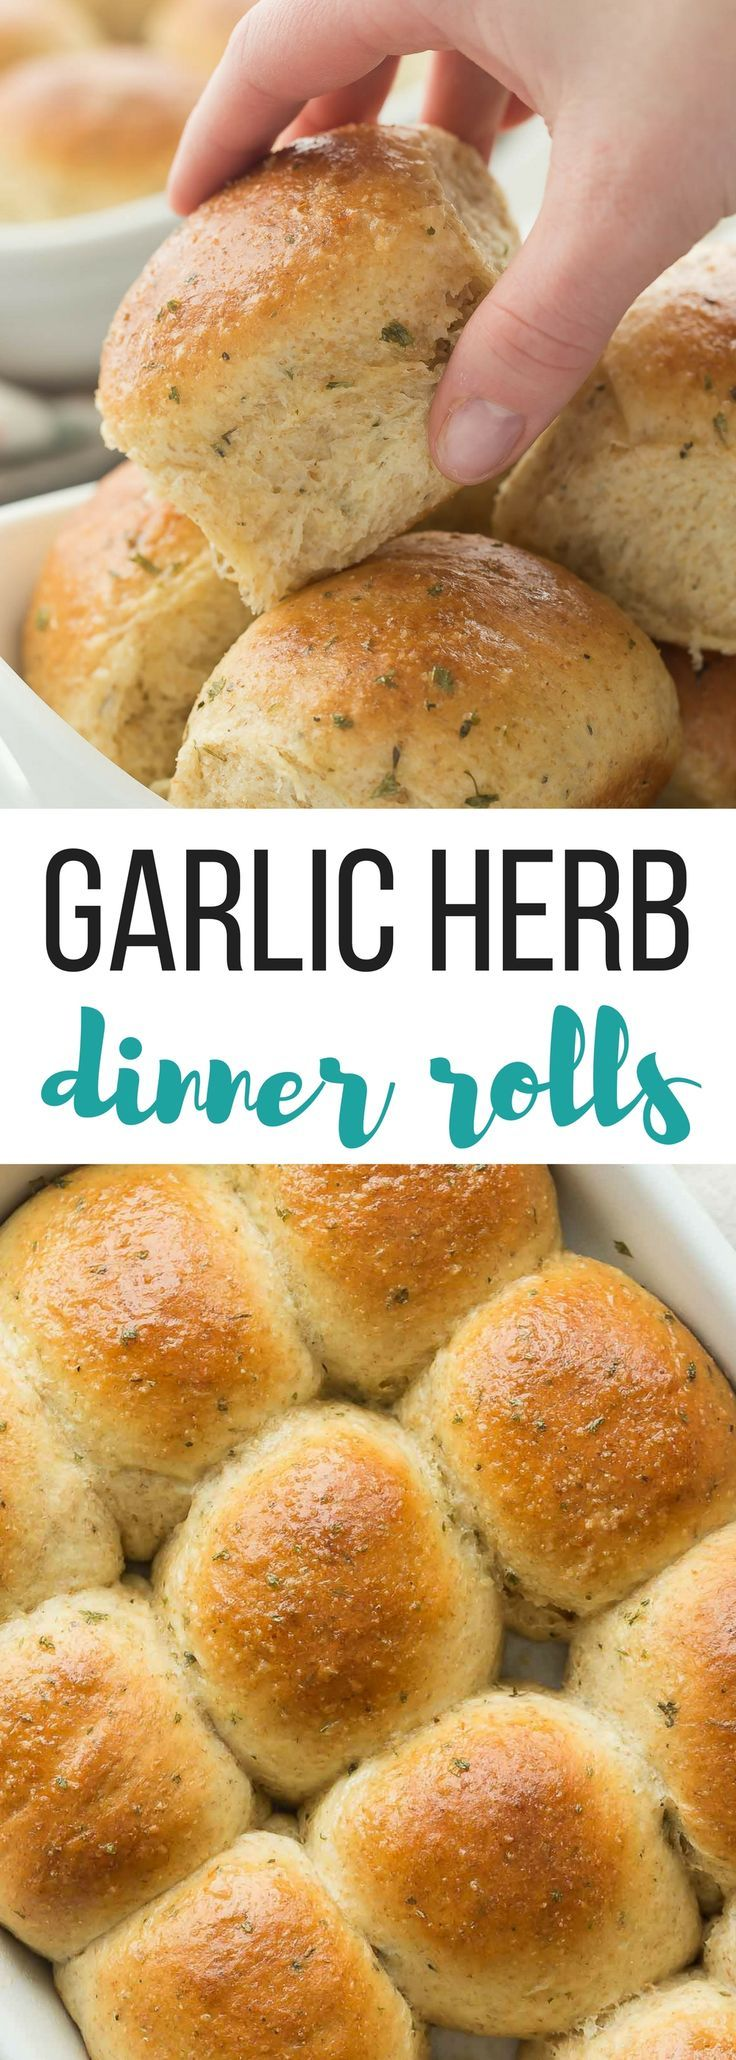 Homemade dinner rolls that are easier than you think, with a step by step recipe video and tons of garlic herb flavor! Theyre perfectly soft and fluffy. | homemade bread | made from scratch | yeast bread | yeast buns | dinner buns | dinner rolls | holiday rolls